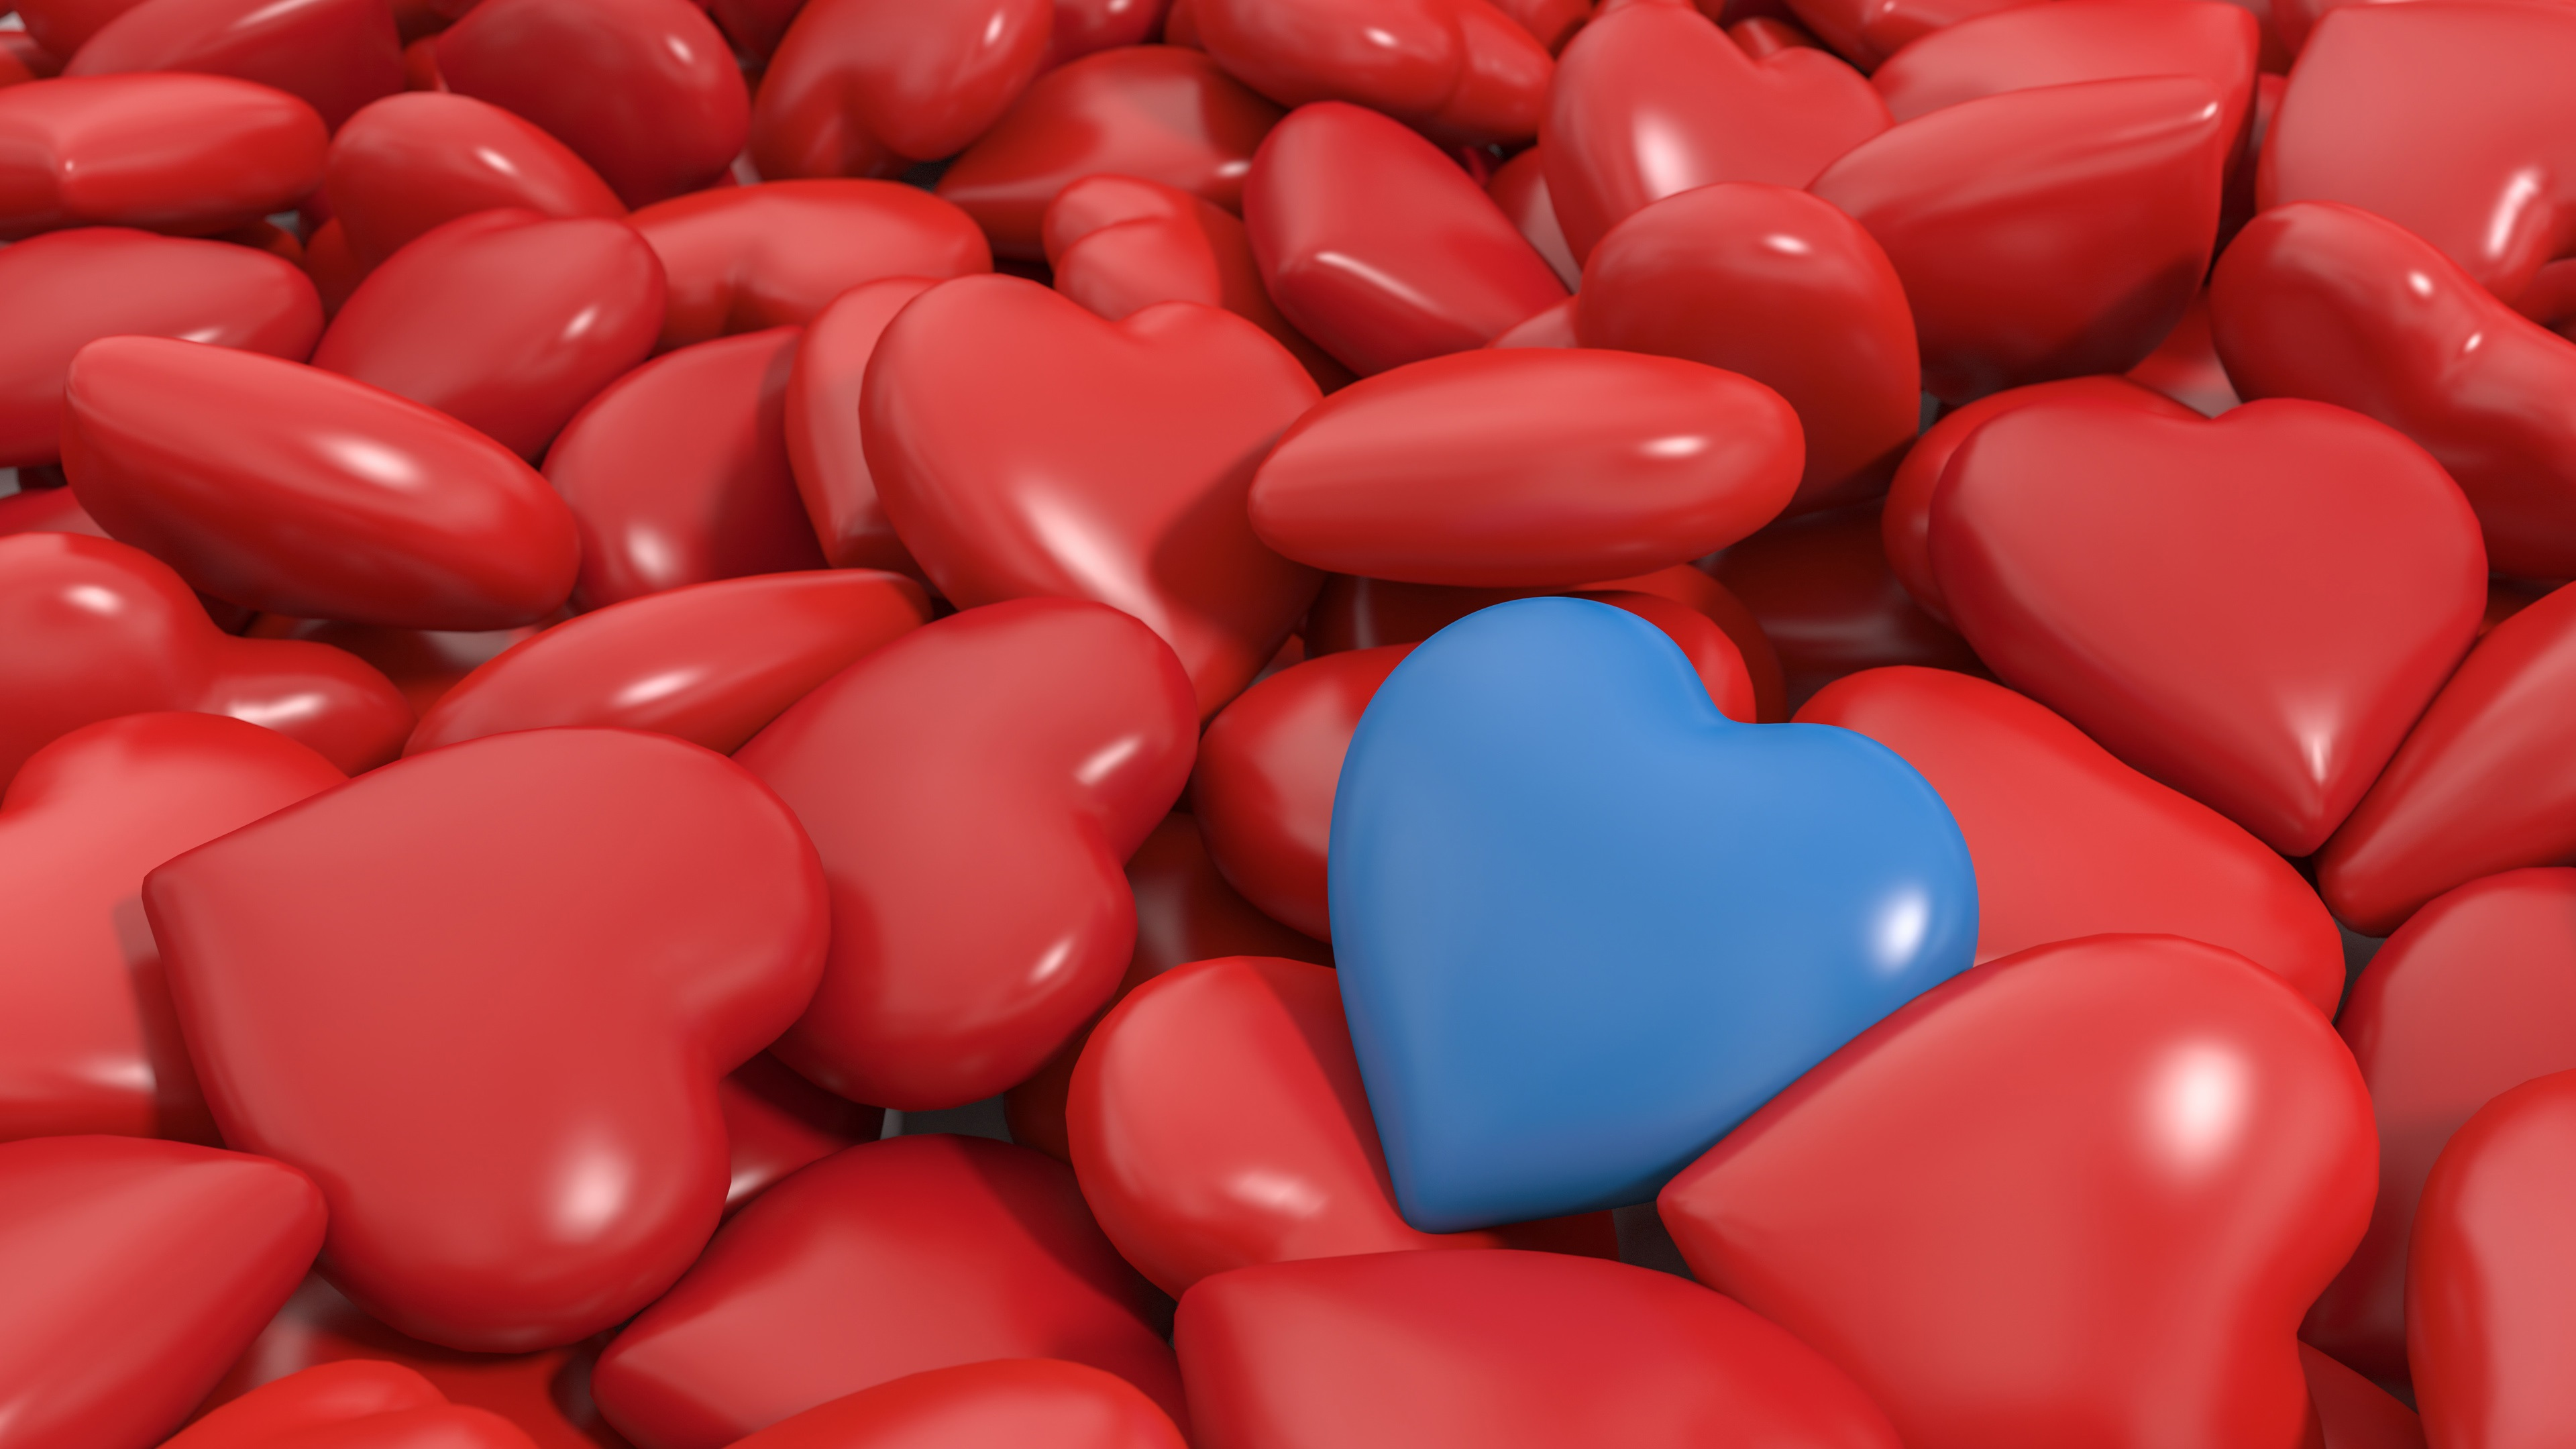 Wallpaper 3d Love Hearts Many Red And One Blue 3840x2160